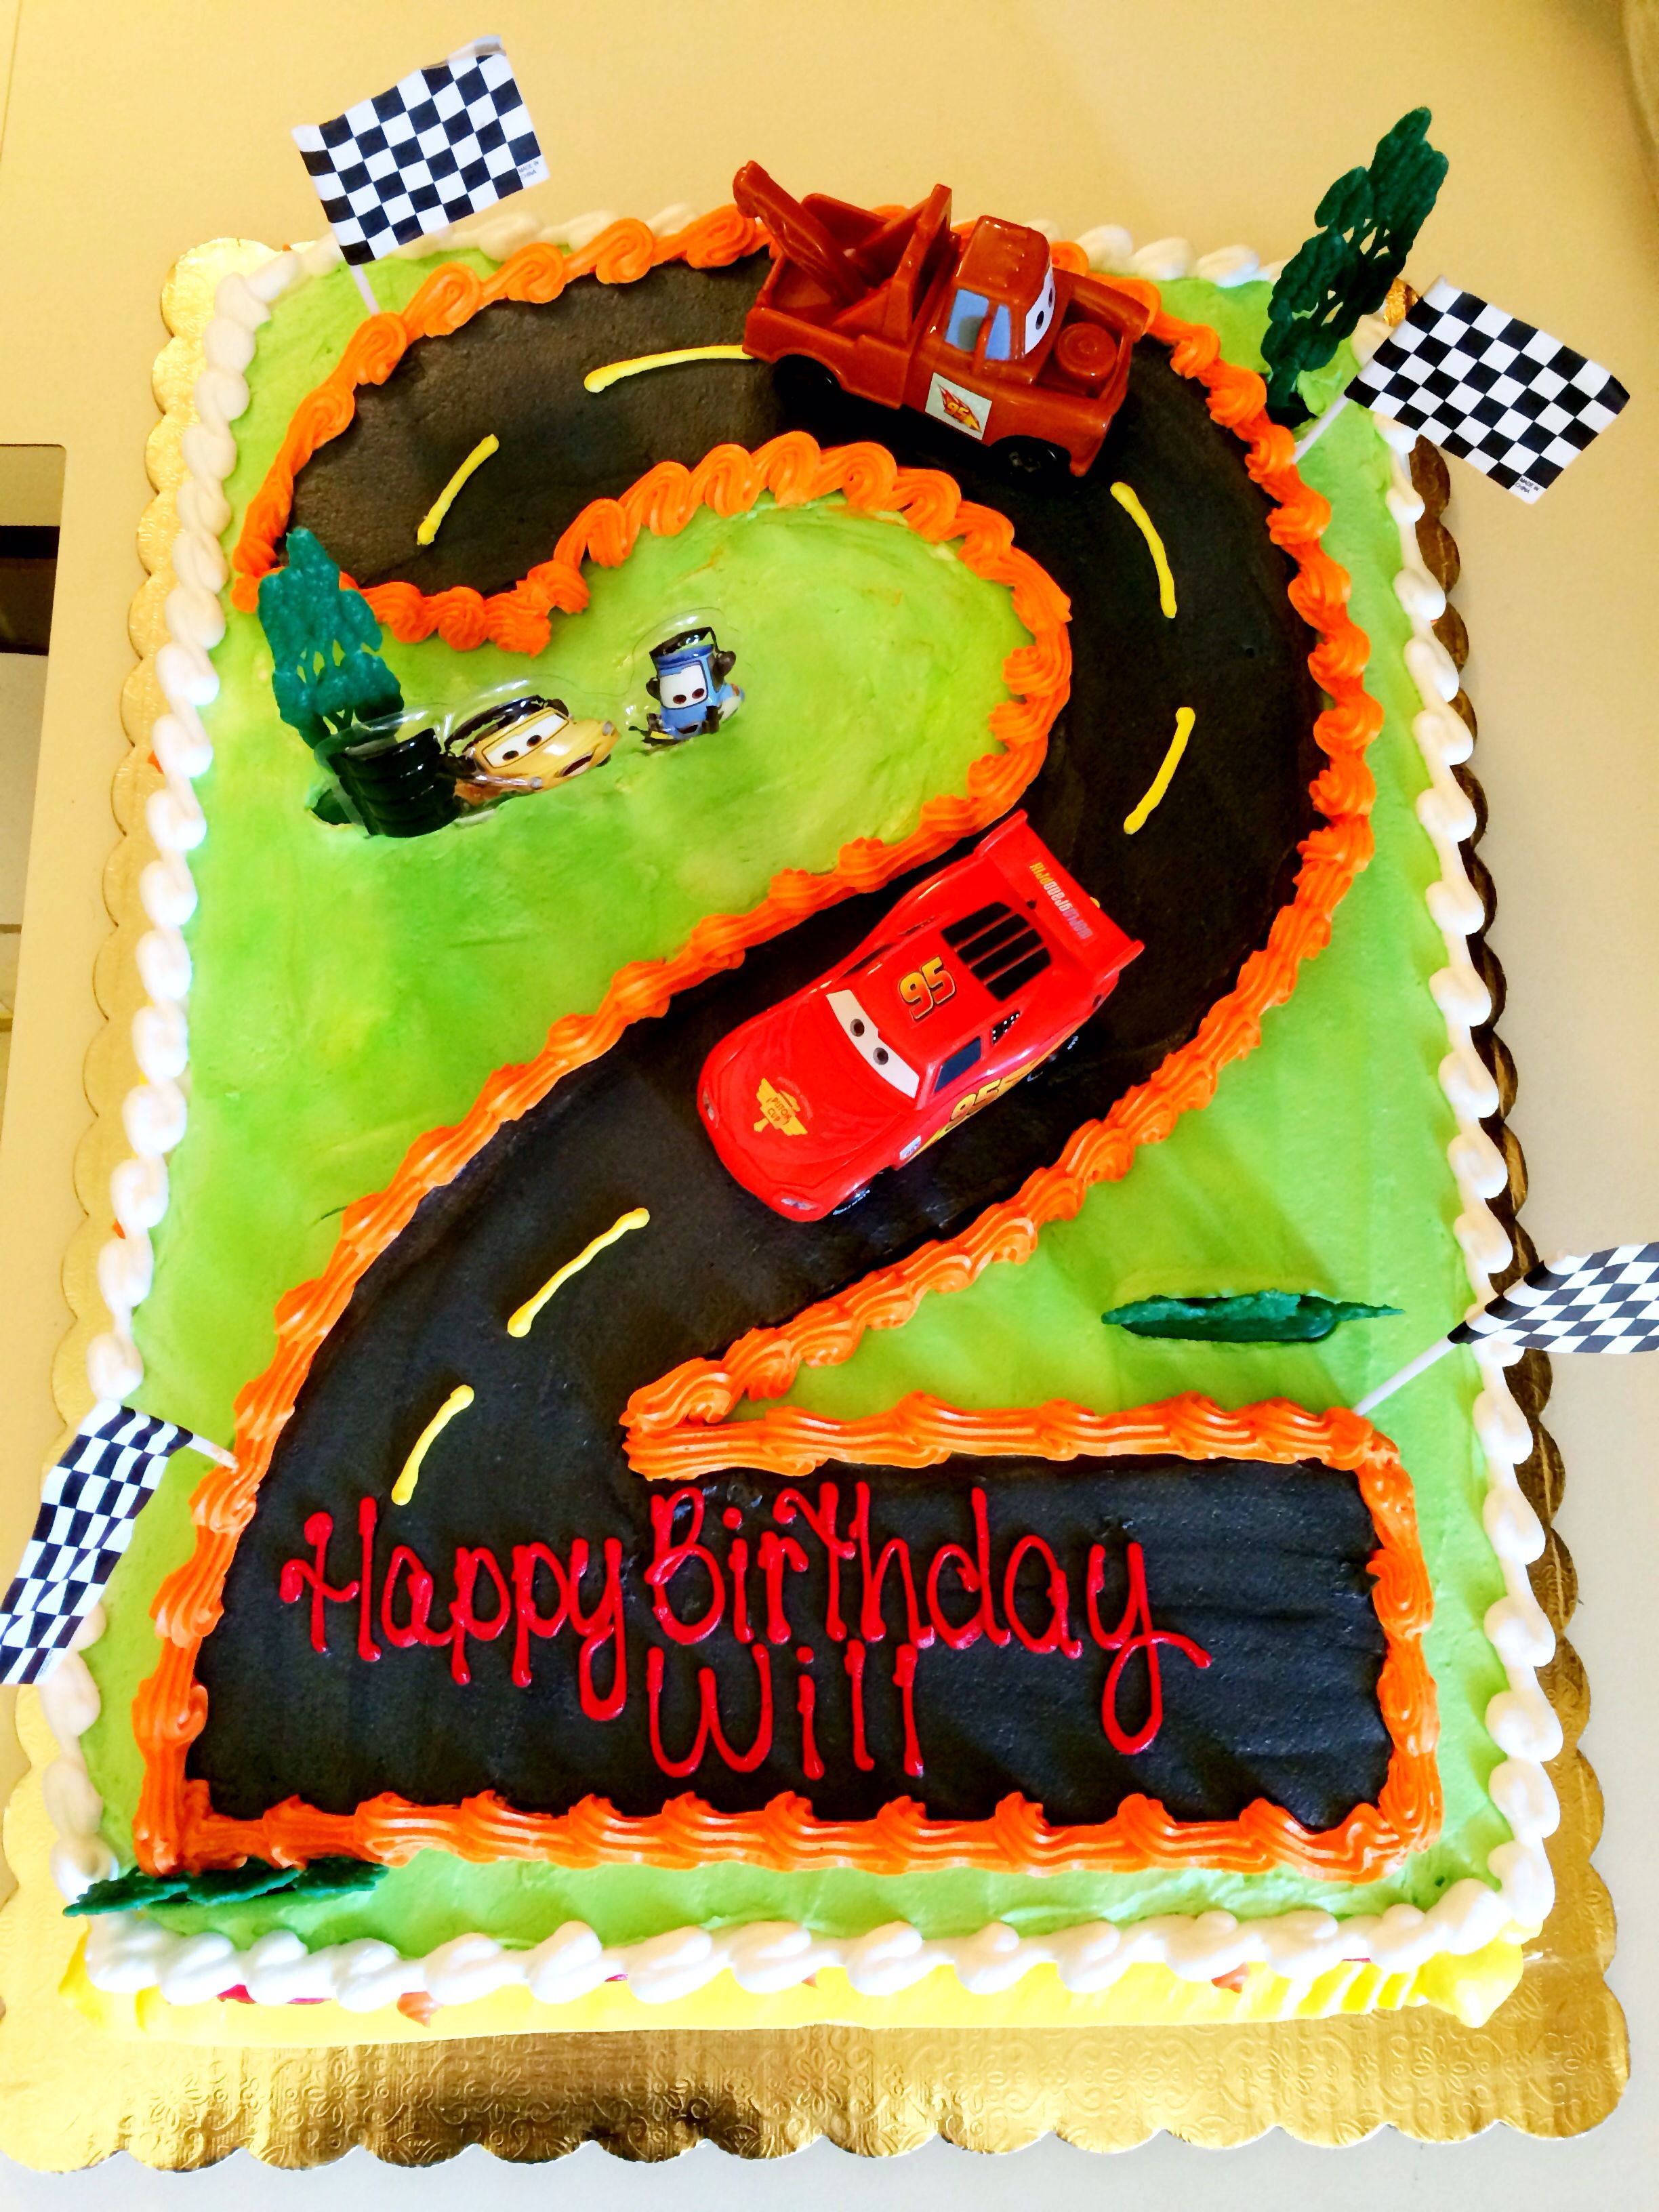 Cake Designs Disney Cars : Disney Cars Birthday Cake Birthday Party Ideas ...